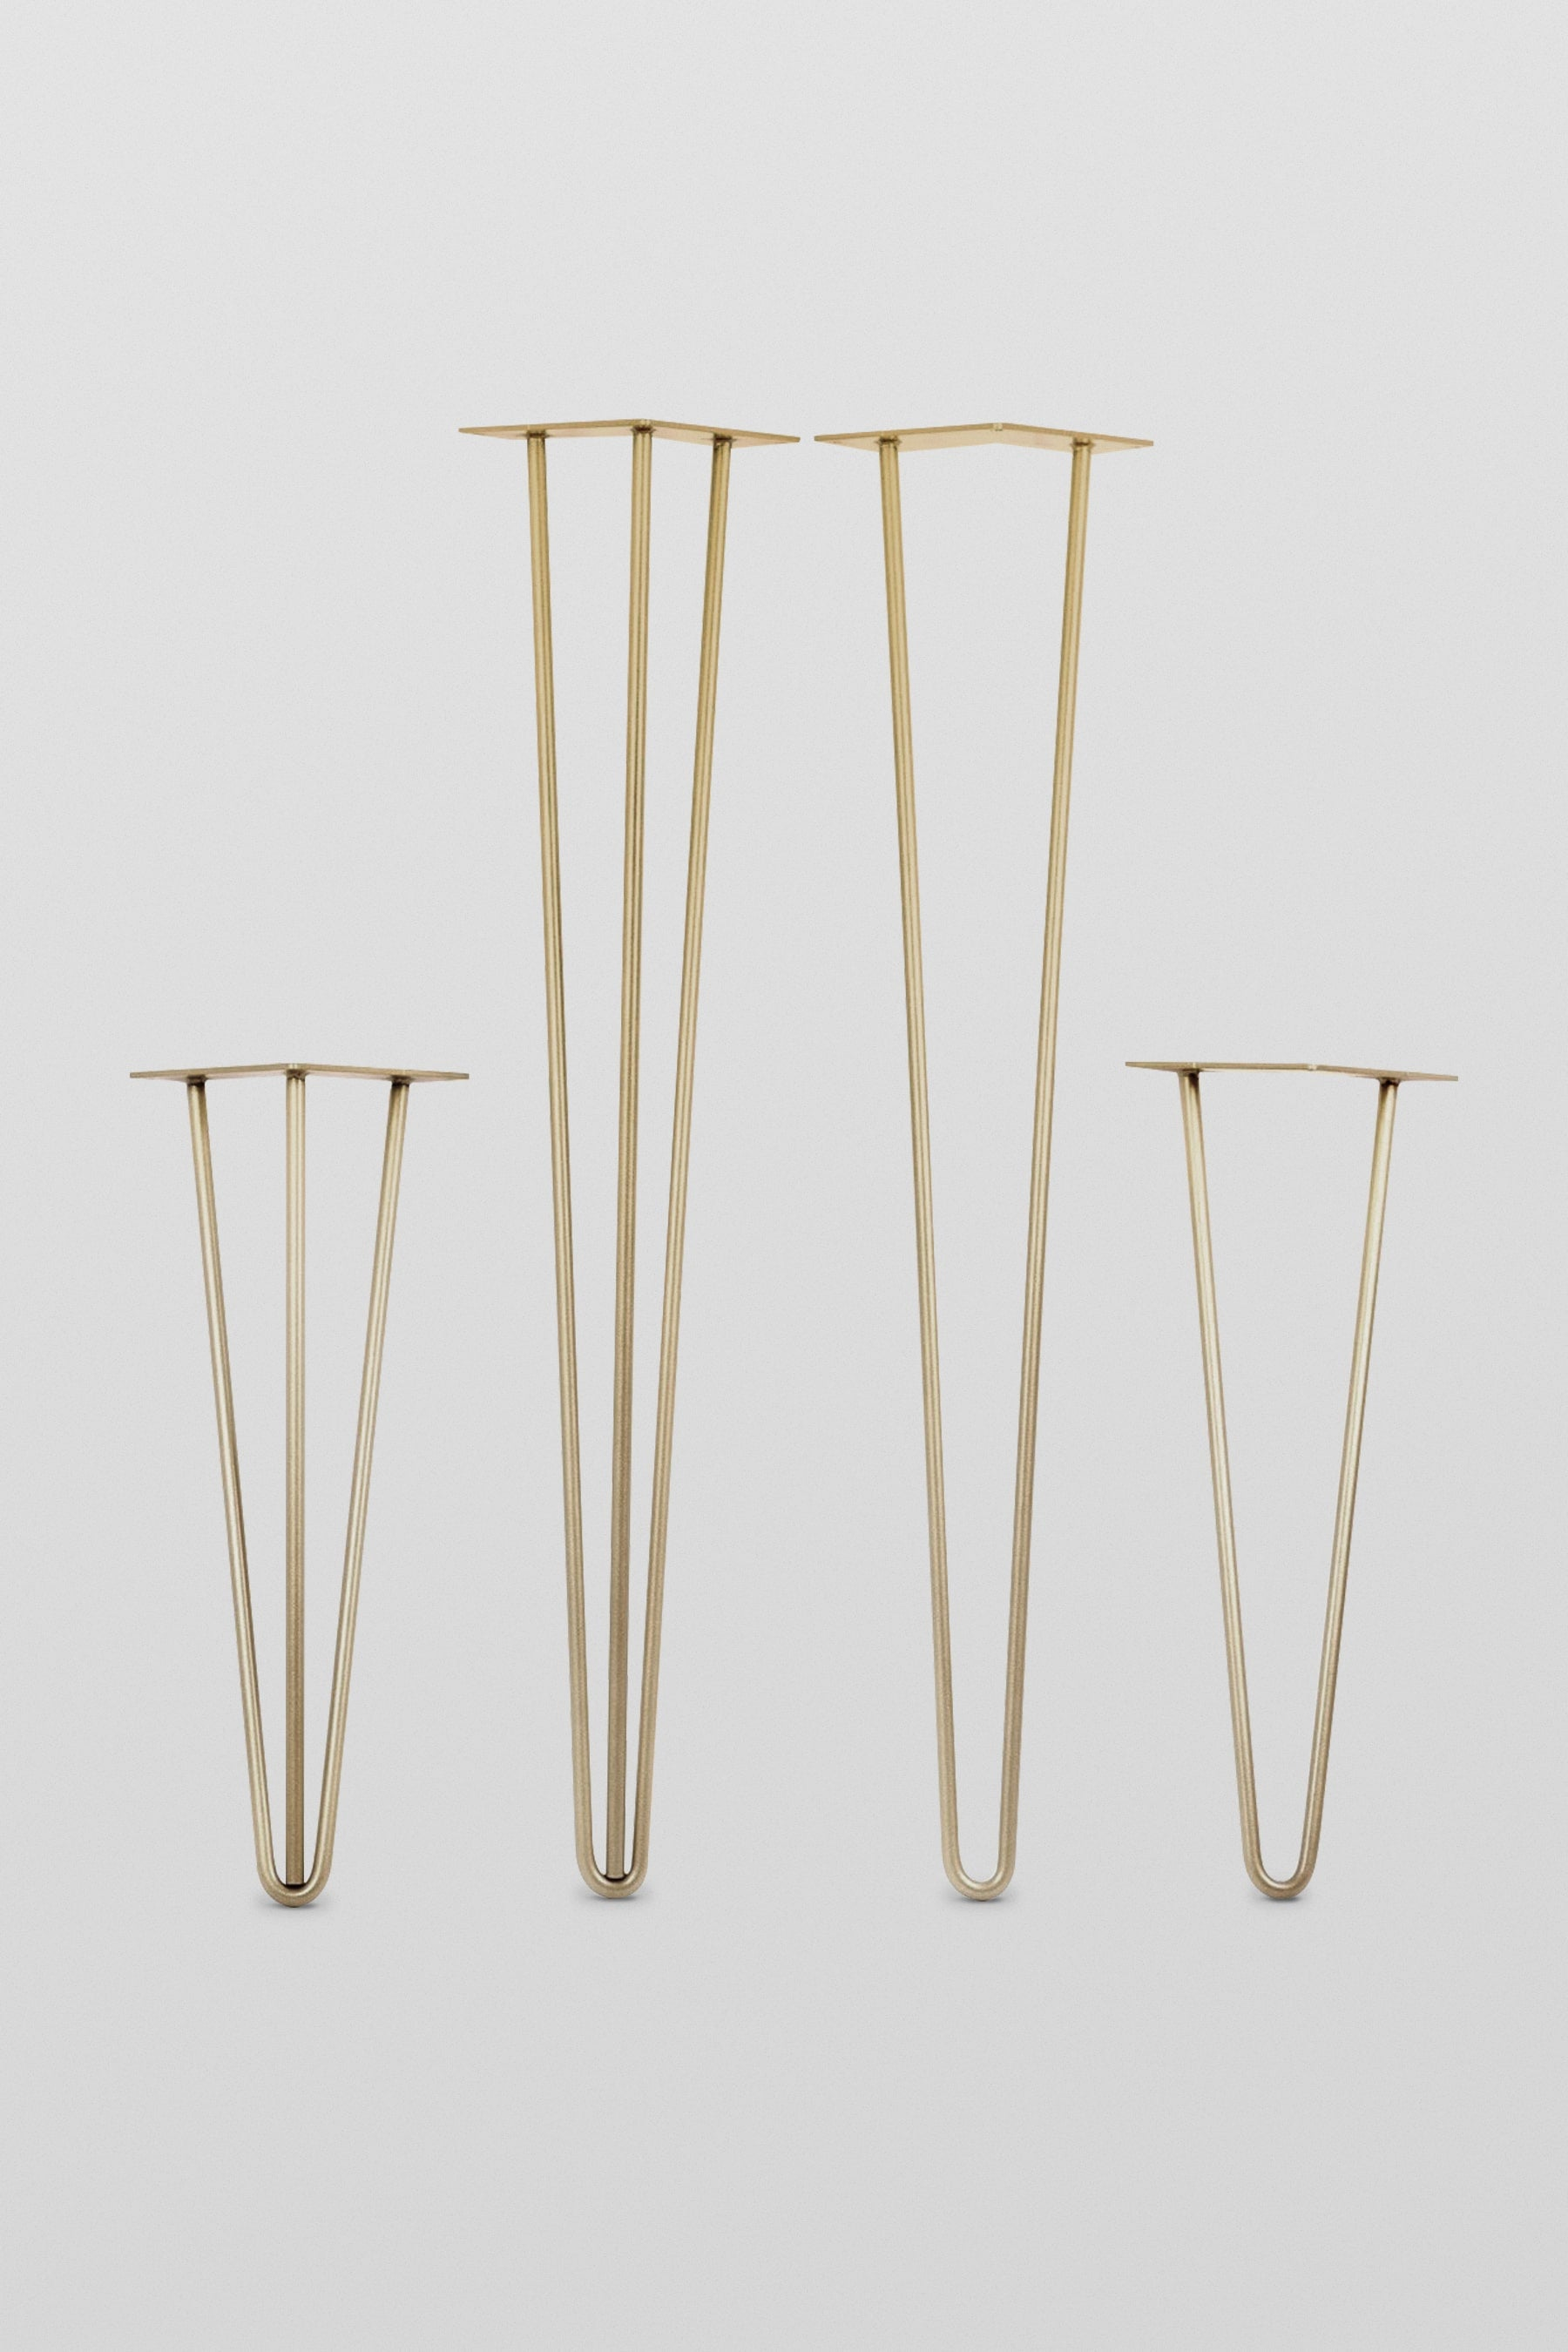 Hairpinlegs.com | Furniture Legs & Fixtures on bed legs, spring legs, anklet legs, bench legs, tie legs, collapsible workbench diy k legs, ms legs, pencil legs, tiffany legs, grill legs, traveler floor radio with legs, hand legs, table legs, wire legs, wedding legs, painted legs, halloween legs, blade legs, holiday legs, ankle straps legs,